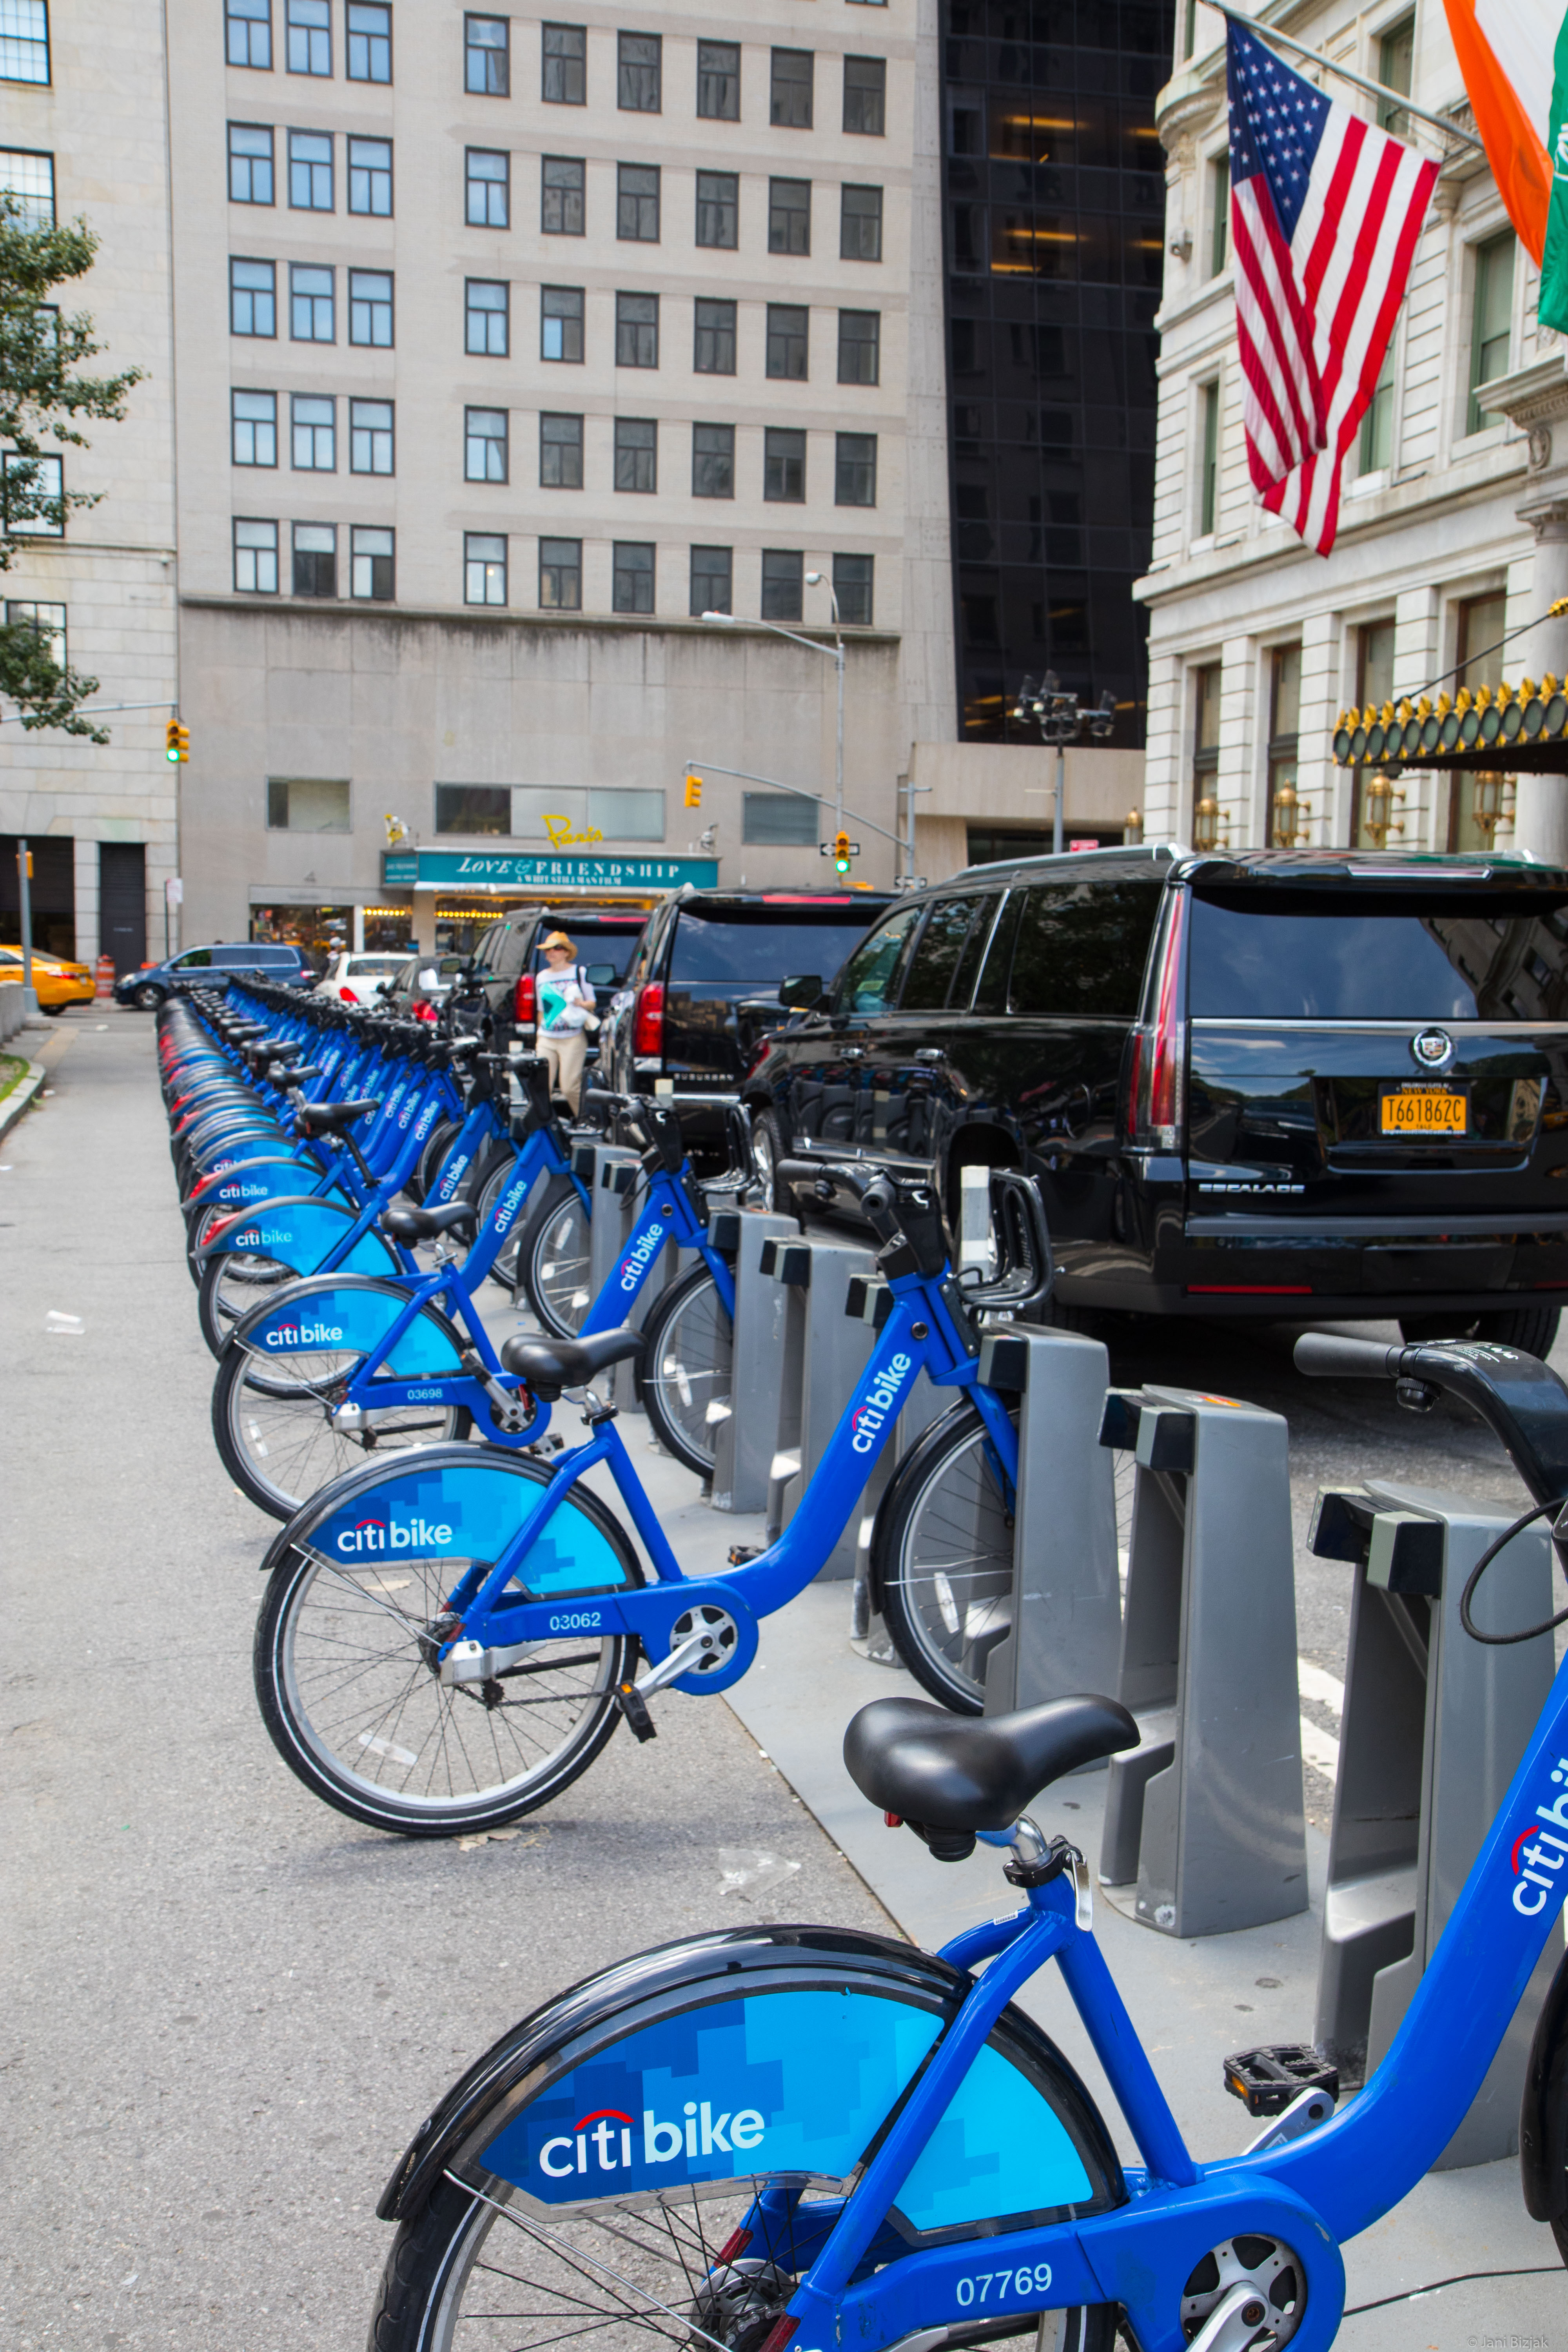 Rent bikes - using bike is surprisingly fast compared to other means of transport in the city.